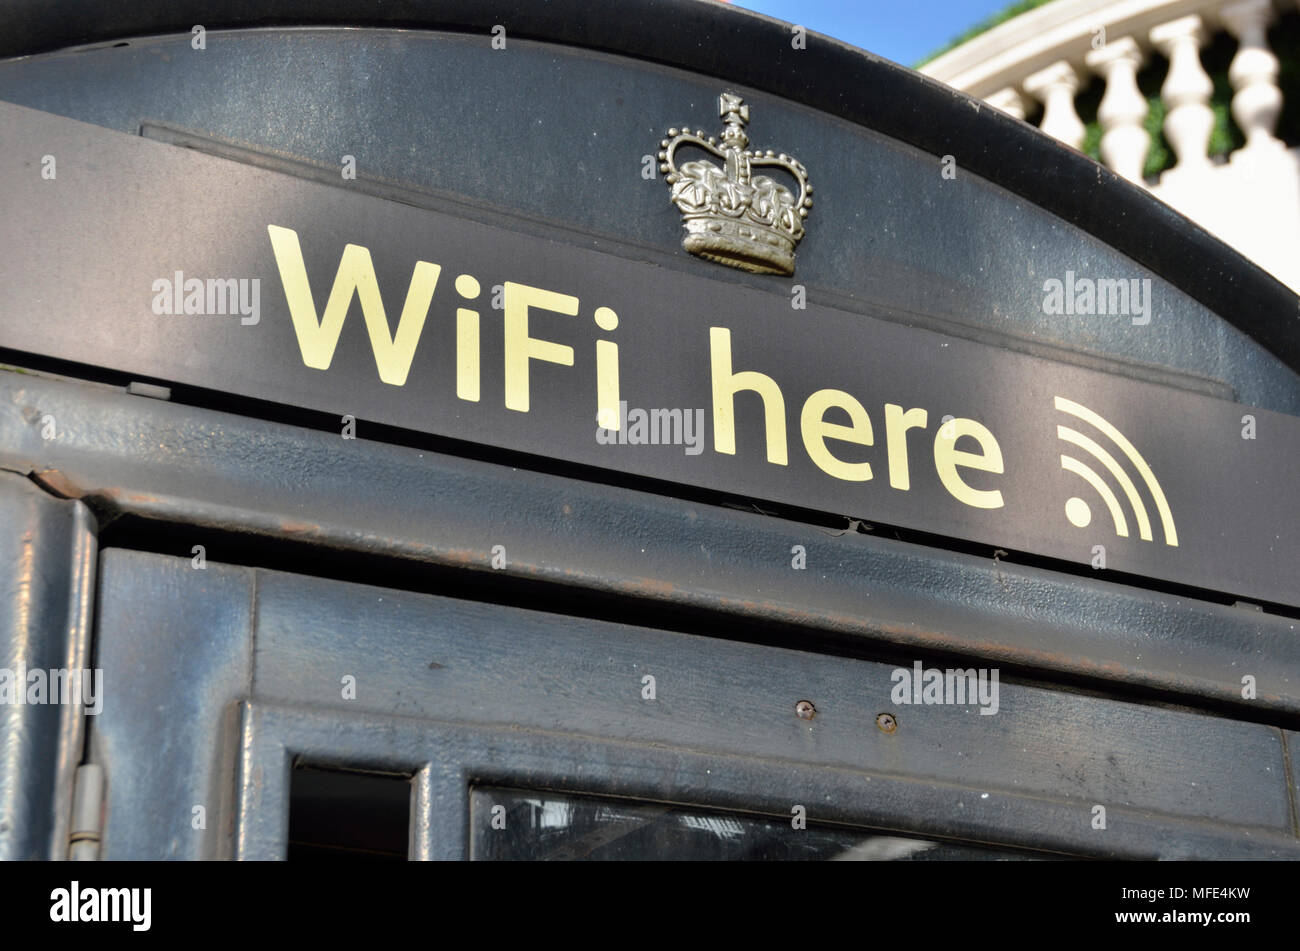 'Wifi here' sign on a public telephone box - Stock Image